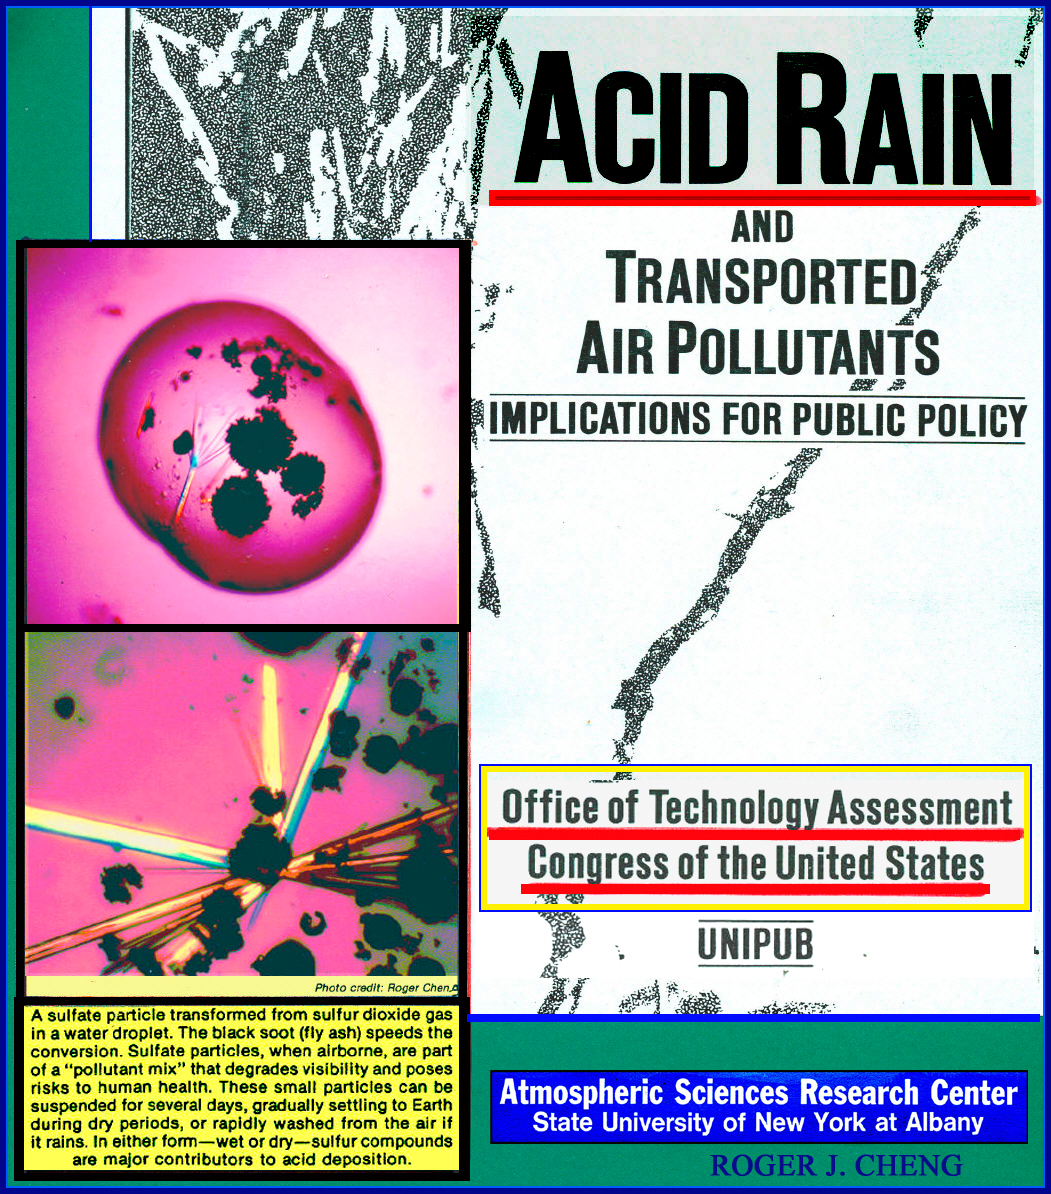 acid rain research article Learn the cause and effect of acid rain read environmental news articles on how acid rain takes nutrients from the soil, leads to stunted forests and more.